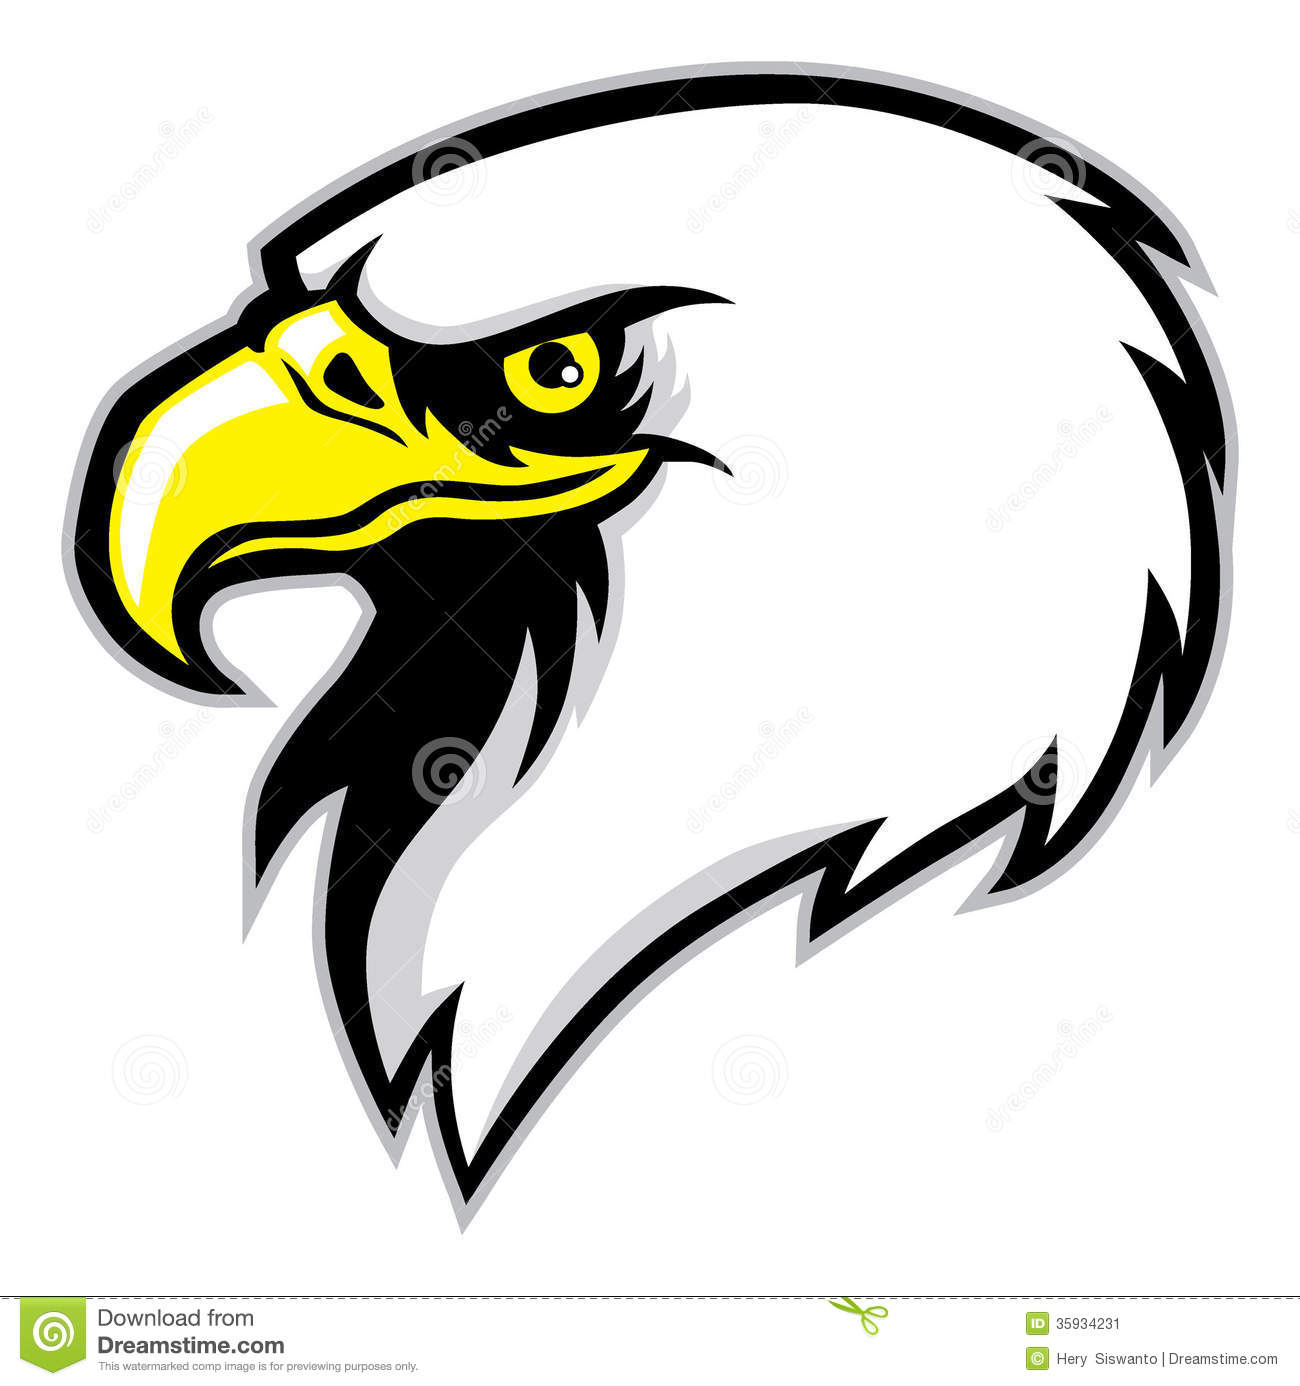 Eagle Head Mascot Stock Image - Image: 35934231